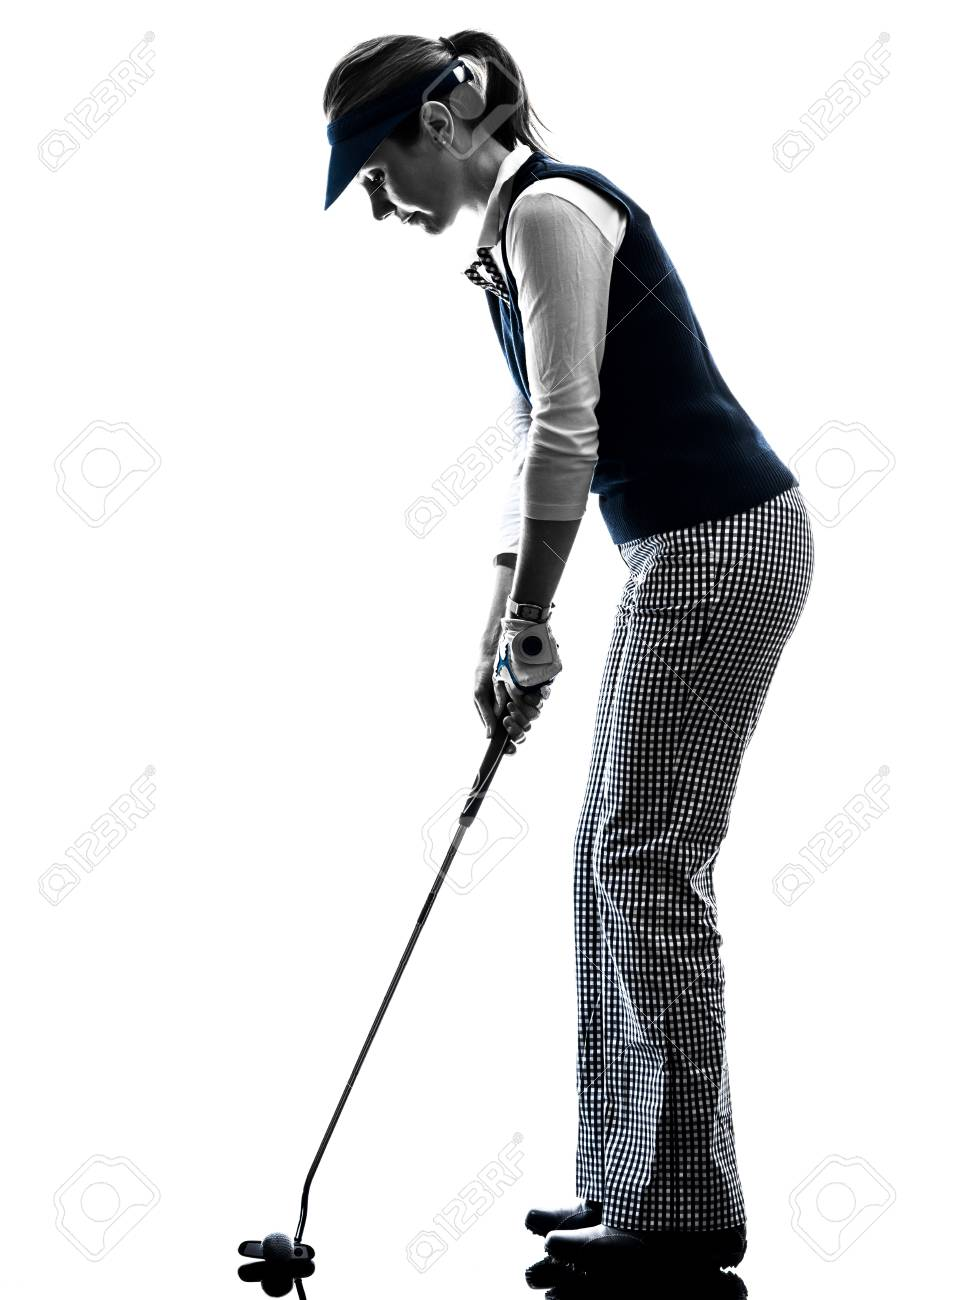 Woman Golfer Golfing Silhouette In White Background Lizenzfreie